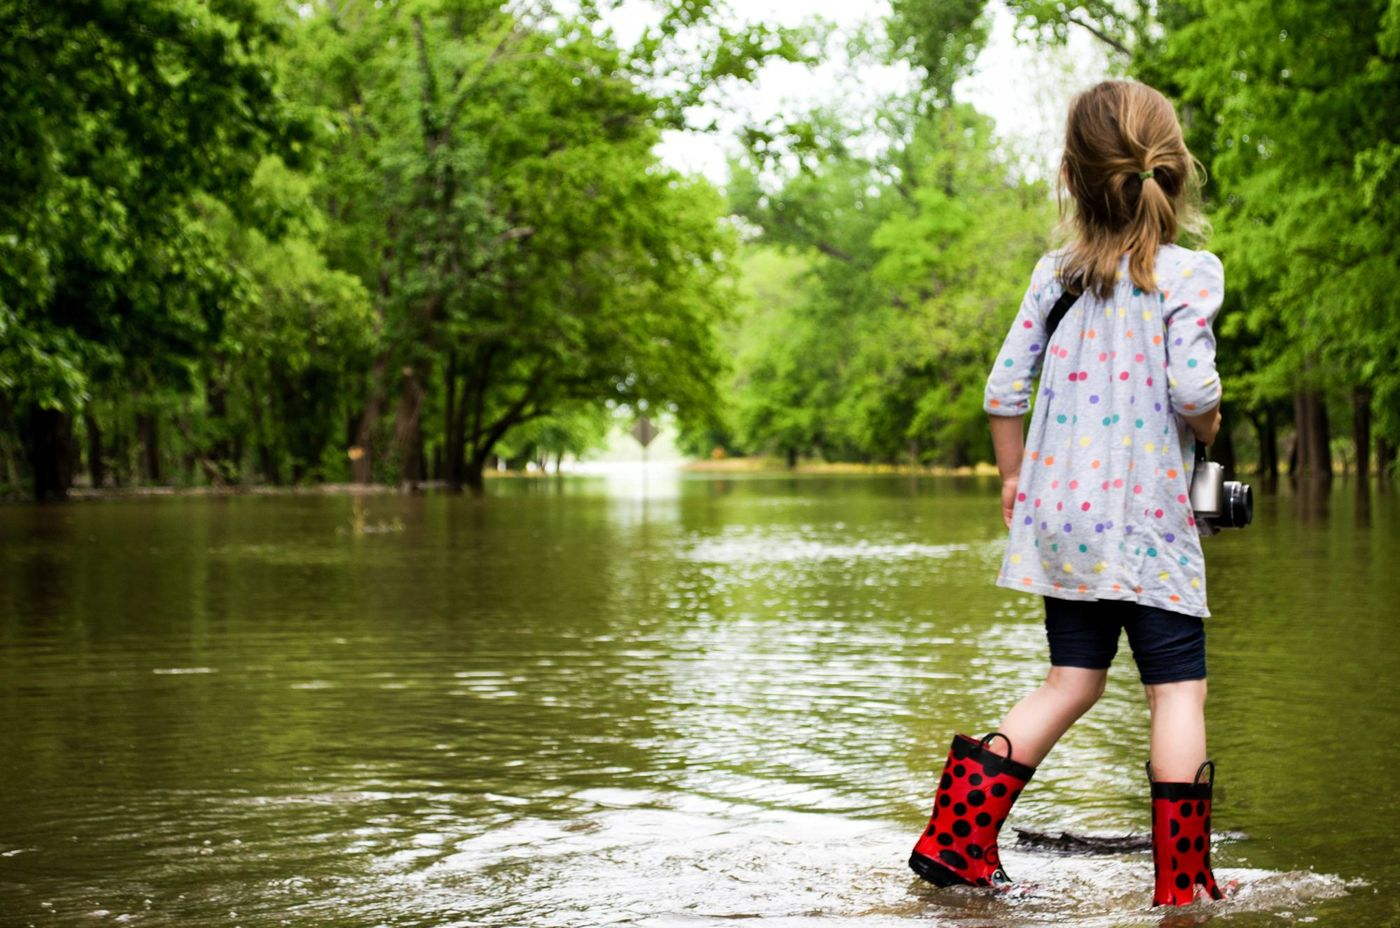 Girl Standing in Flood Waters